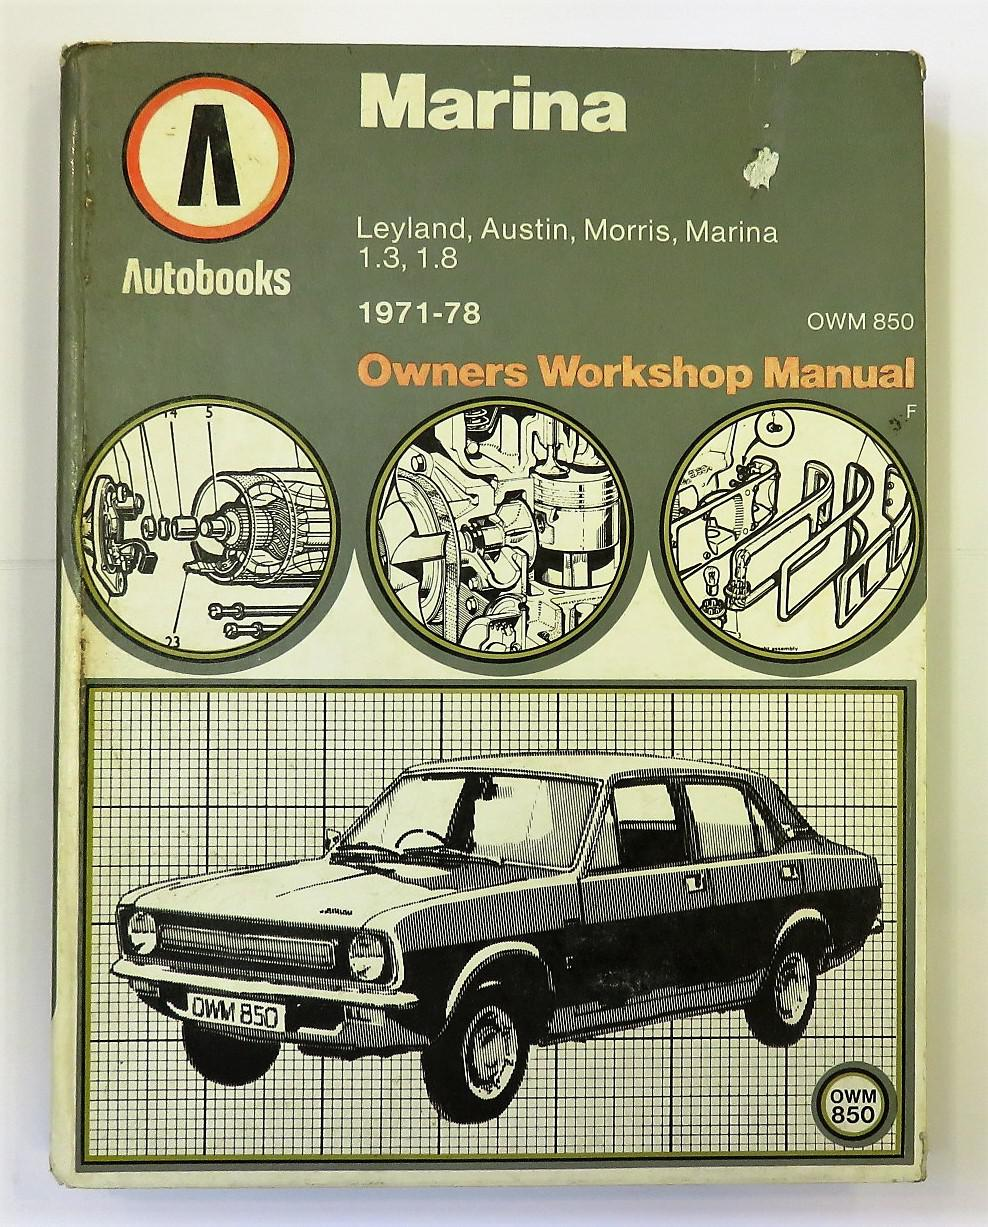 Marina 1971-78 Autobook Owners Workshop Manual